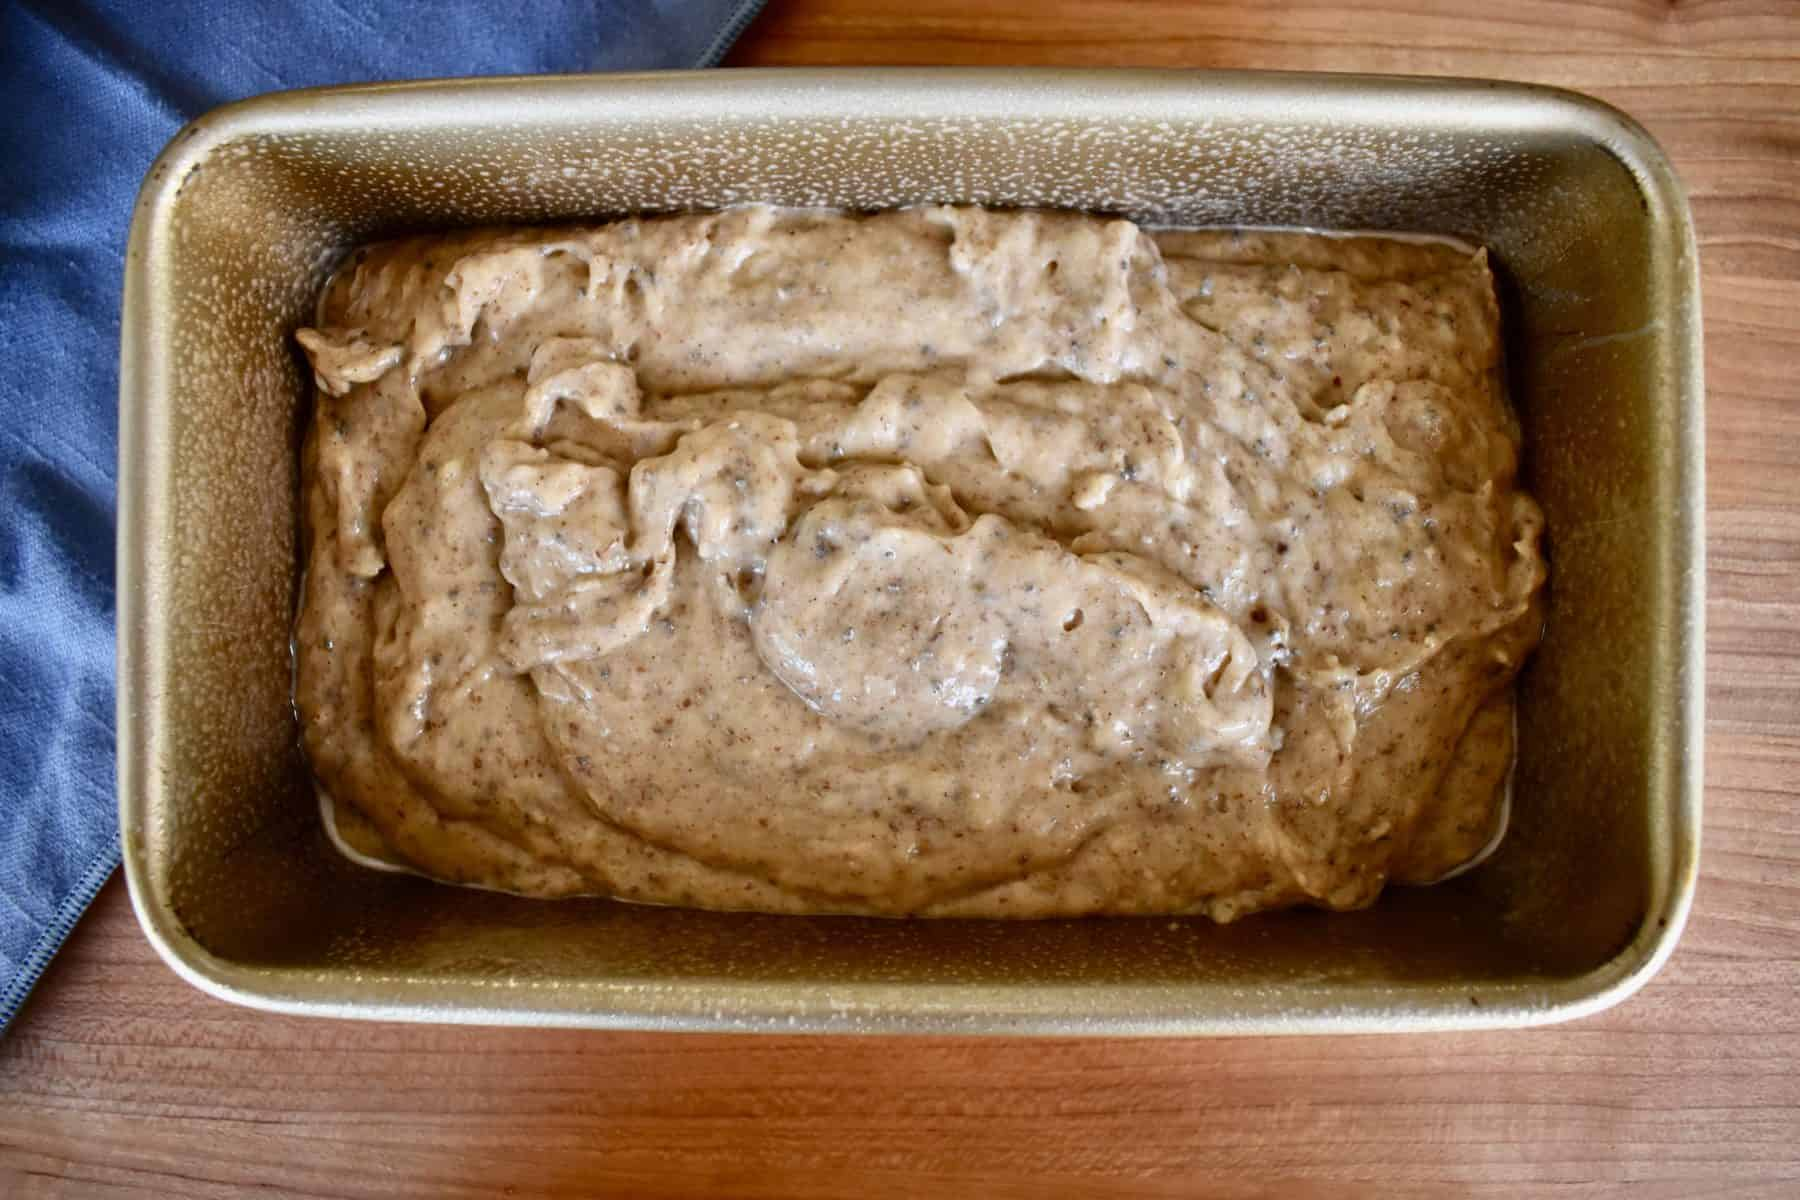 batter in loaf pan ready to go in the oven.